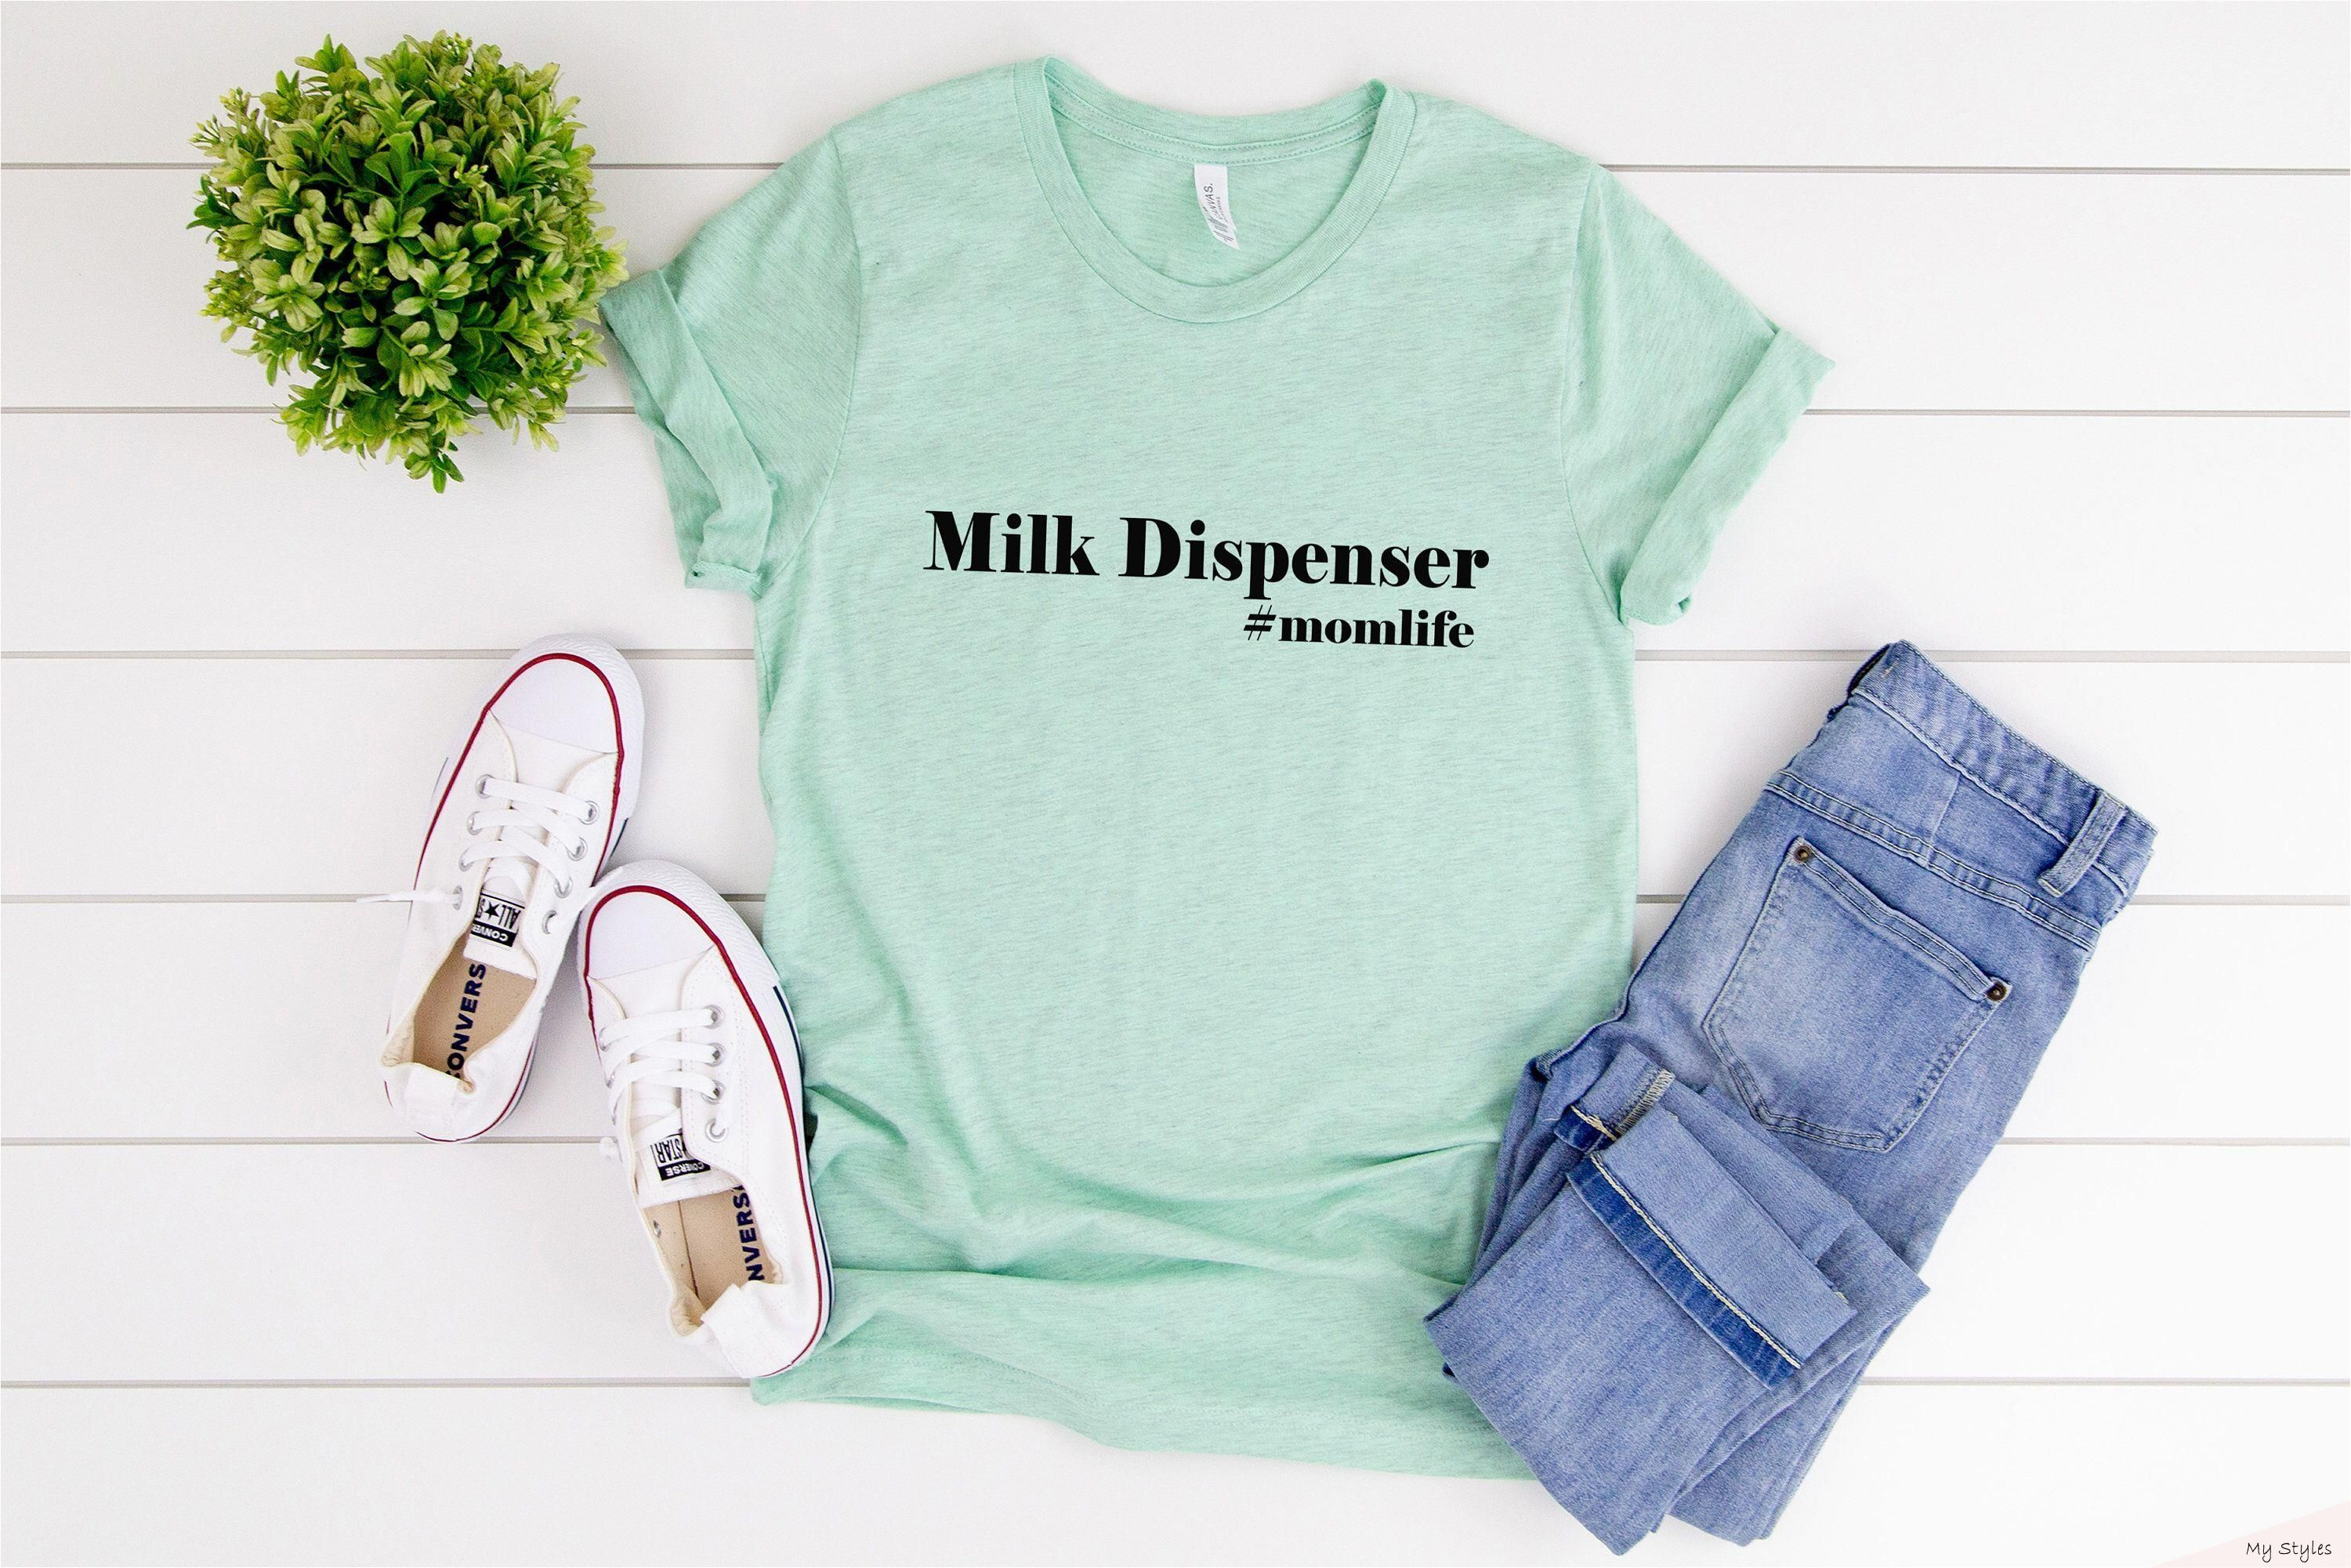 Milk Dispenser Tee  Womens Clothing  Shirts for Women  Womens Shirts  Funny Mom Shirt  Mom- #breastfeeding #humor #truths